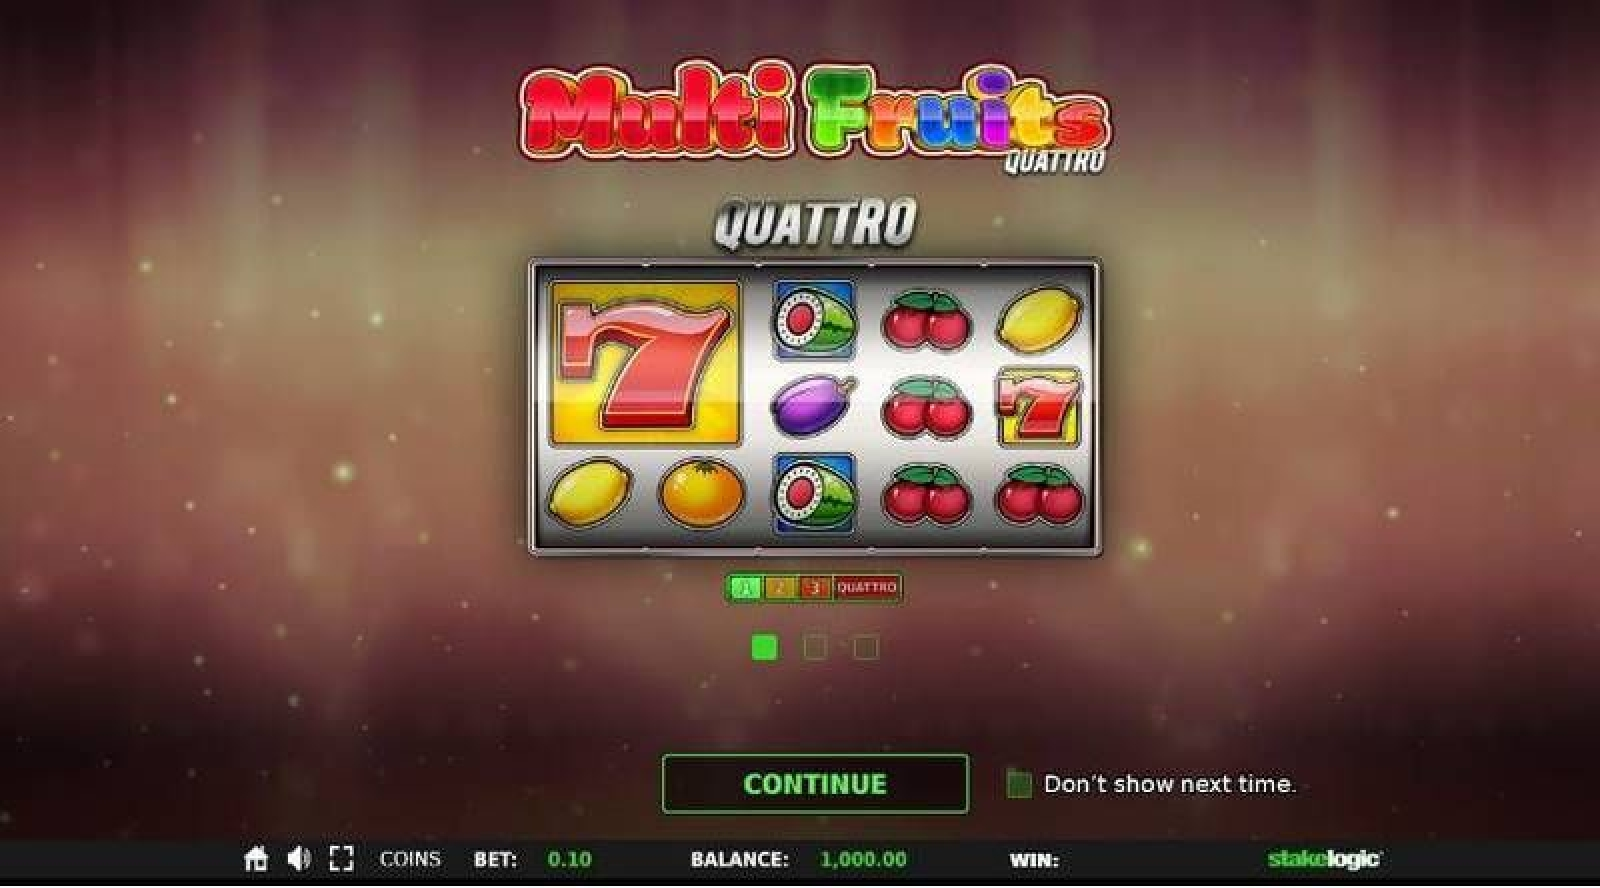 The Multi Fruits Quattro Online Slot Demo Game by StakeLogic